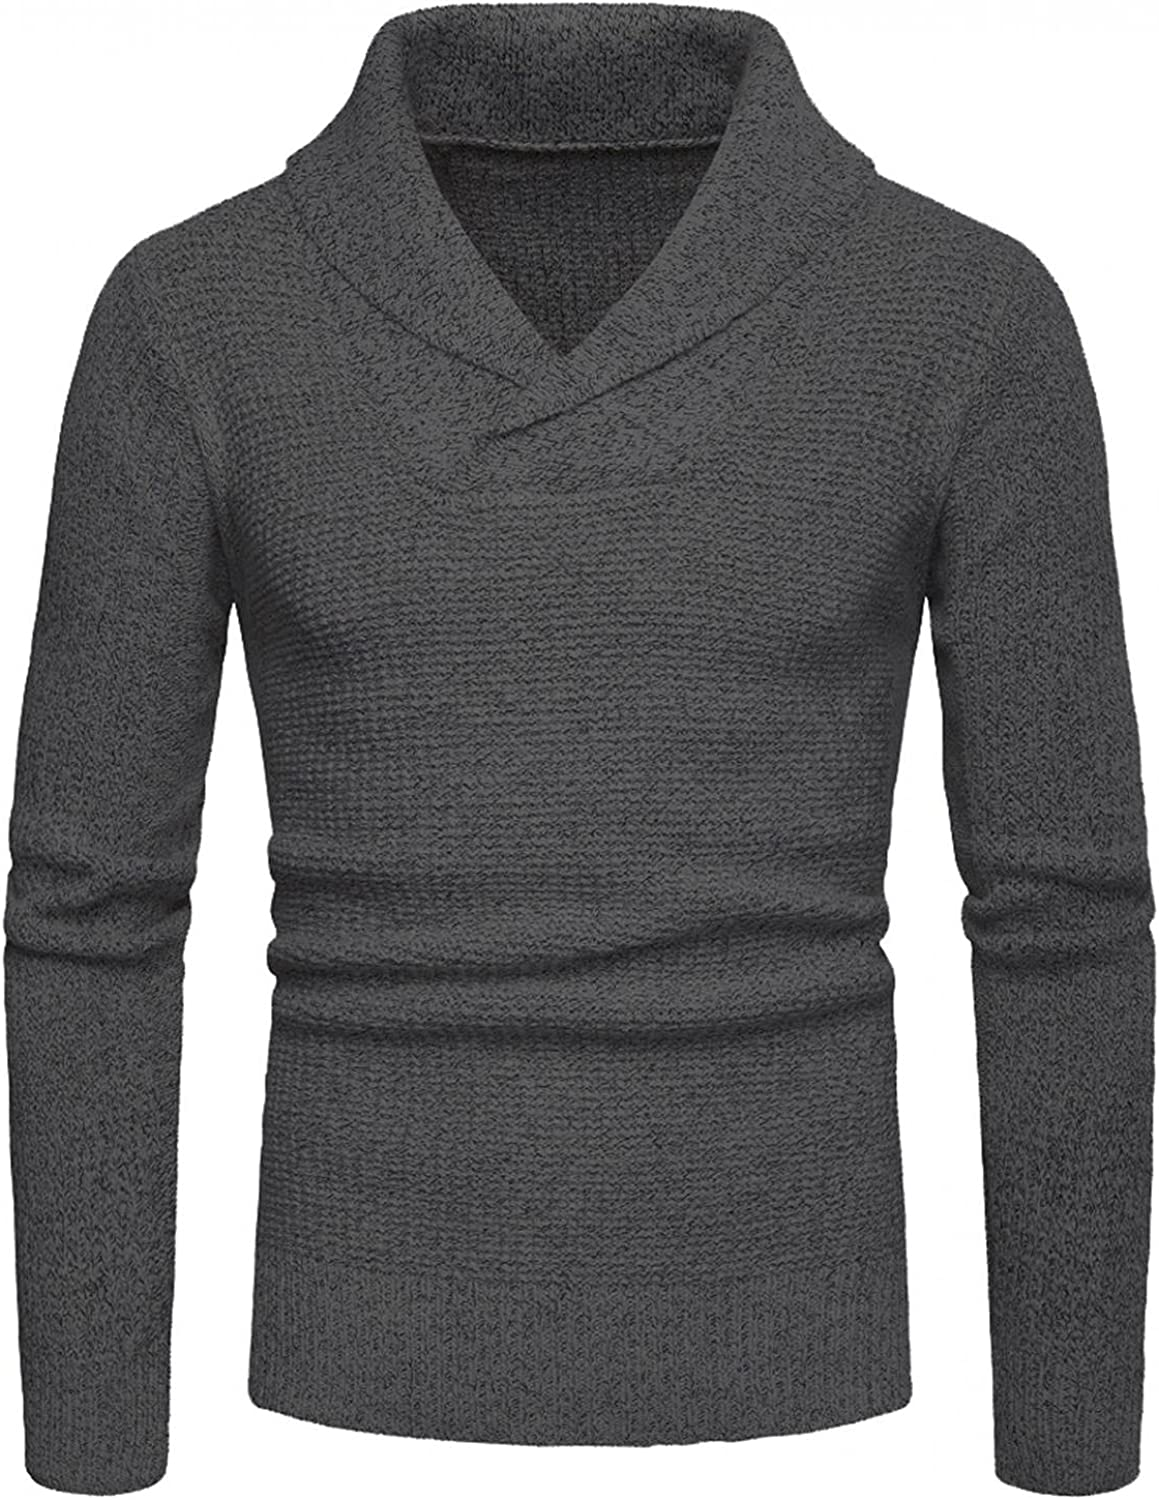 FUNEY Men's Shawl Collar Pullover Sweater Slim Fit Casual Long Sleeve V-Neck Cotton Cable Knit Sweaters Tops